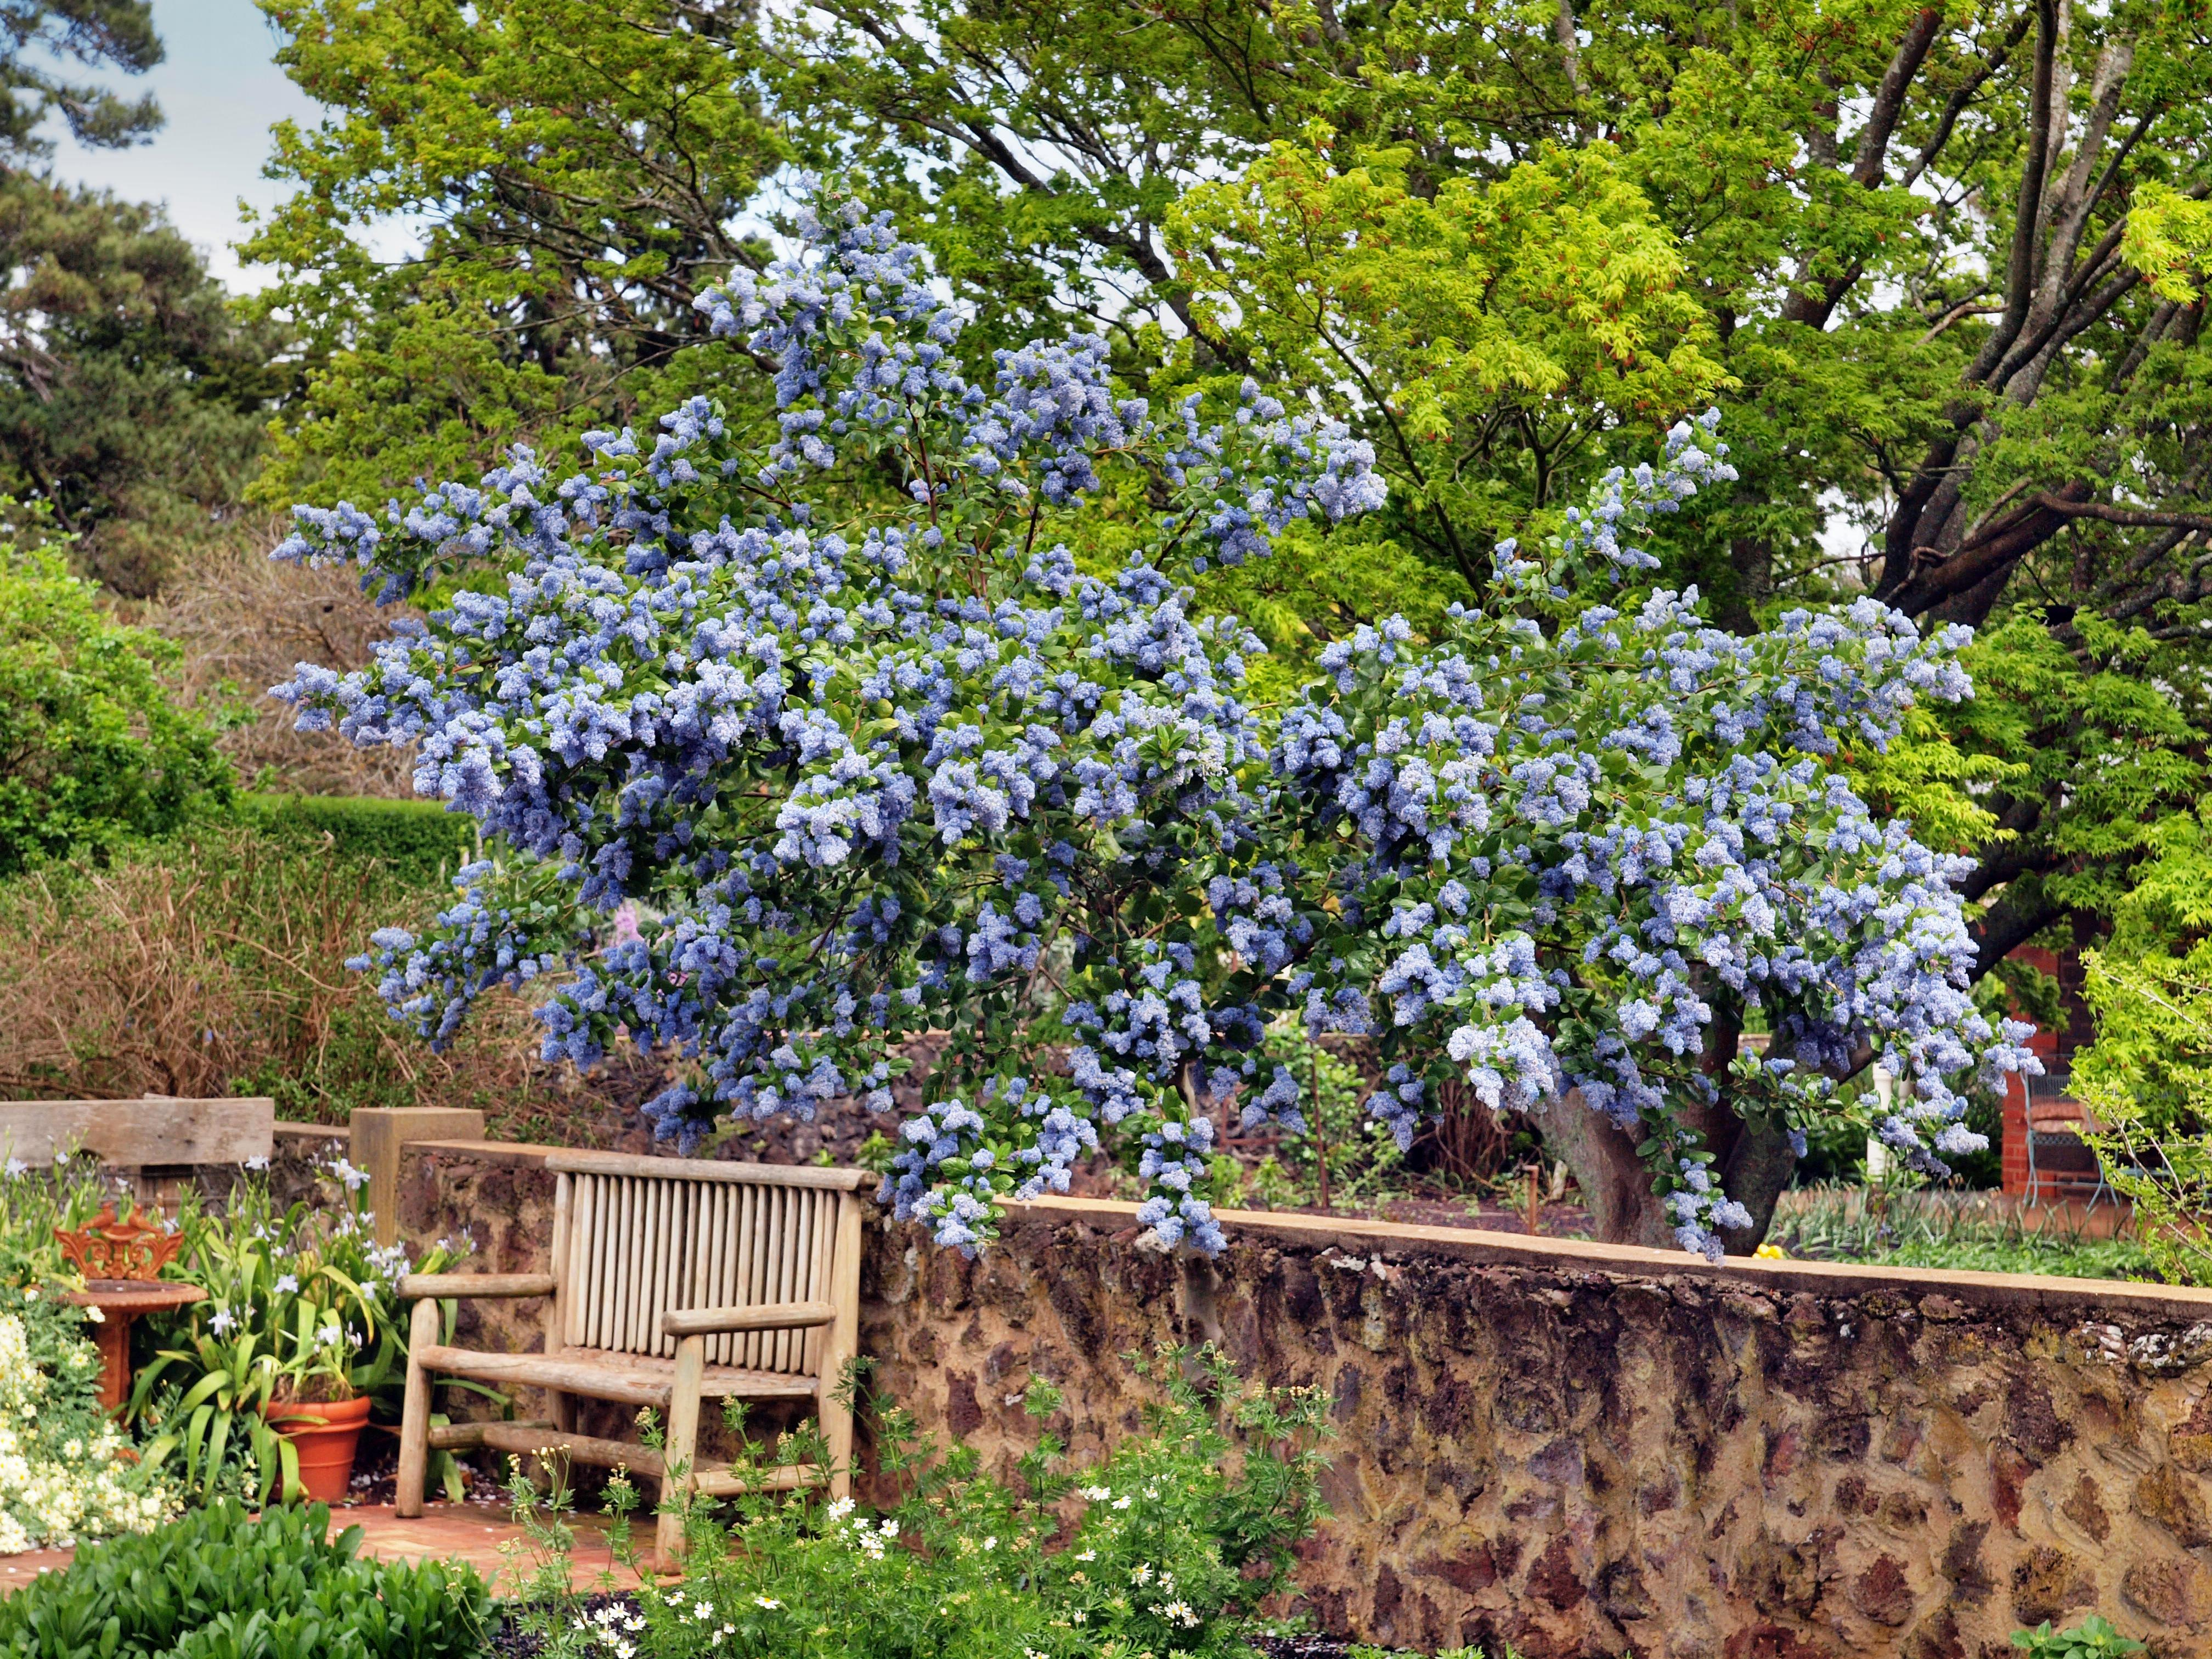 This should be Ceanothus.jpeg.  Is it missing?